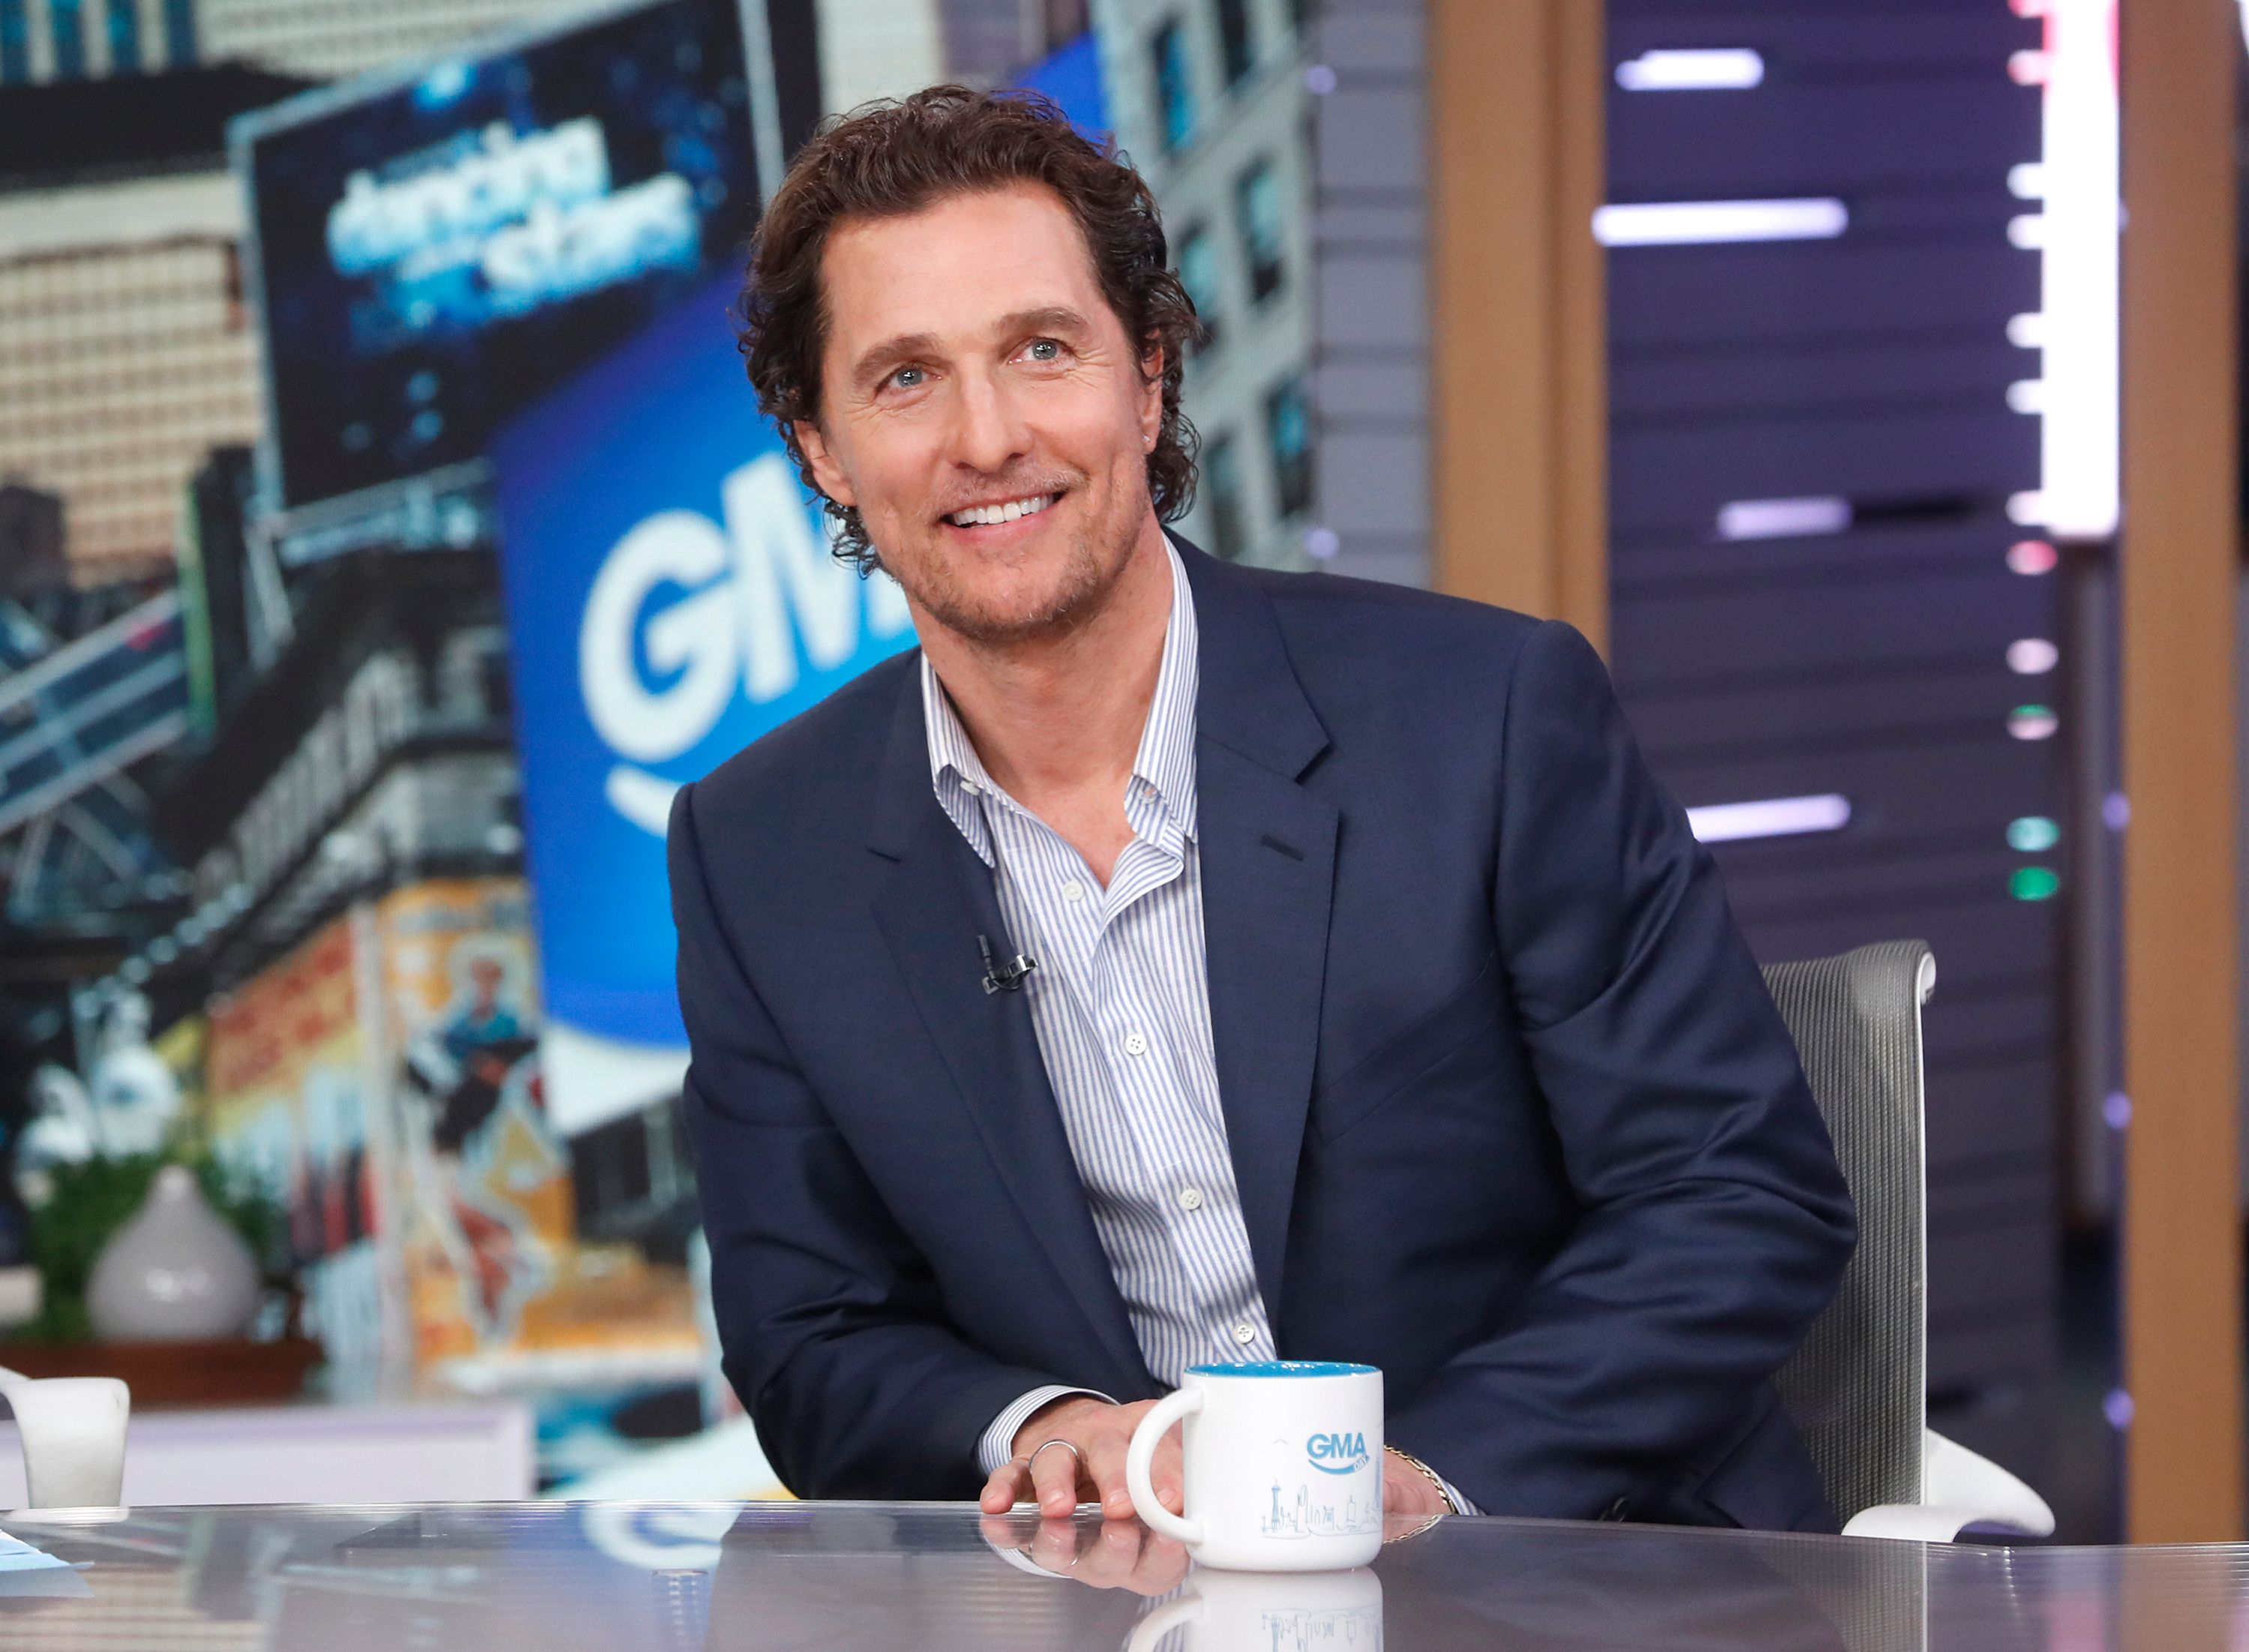 """Matthew McConaughey on """"GMA Day,"""" on January 24, 2019 